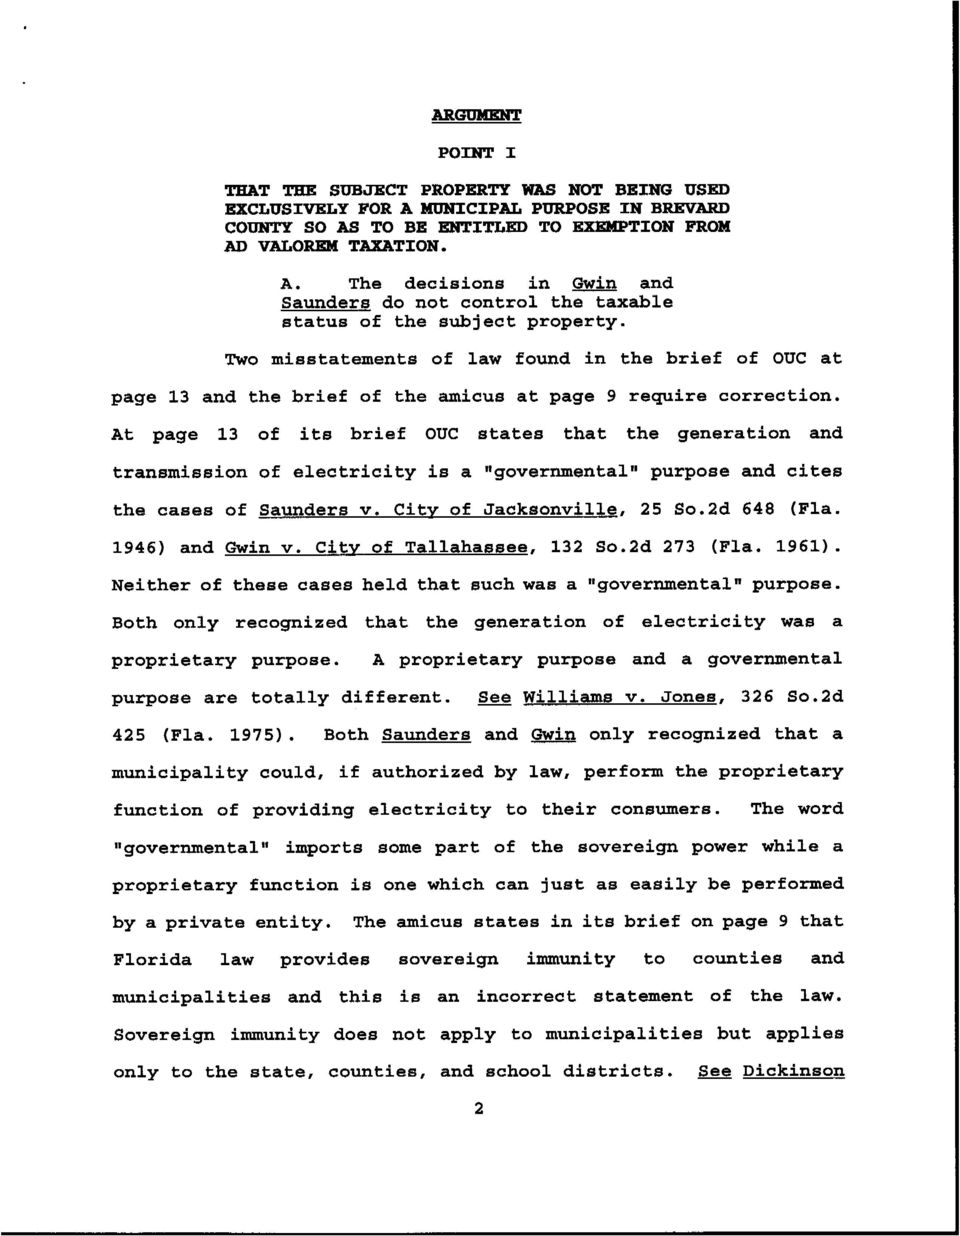 At page 13 of its brief OUC states that the generation and transmission of electricity is a vtgovernmentaltl purpose and cites the cases of Saunders v. City of Jacksonville, 25 So.2d 648 (Fla.